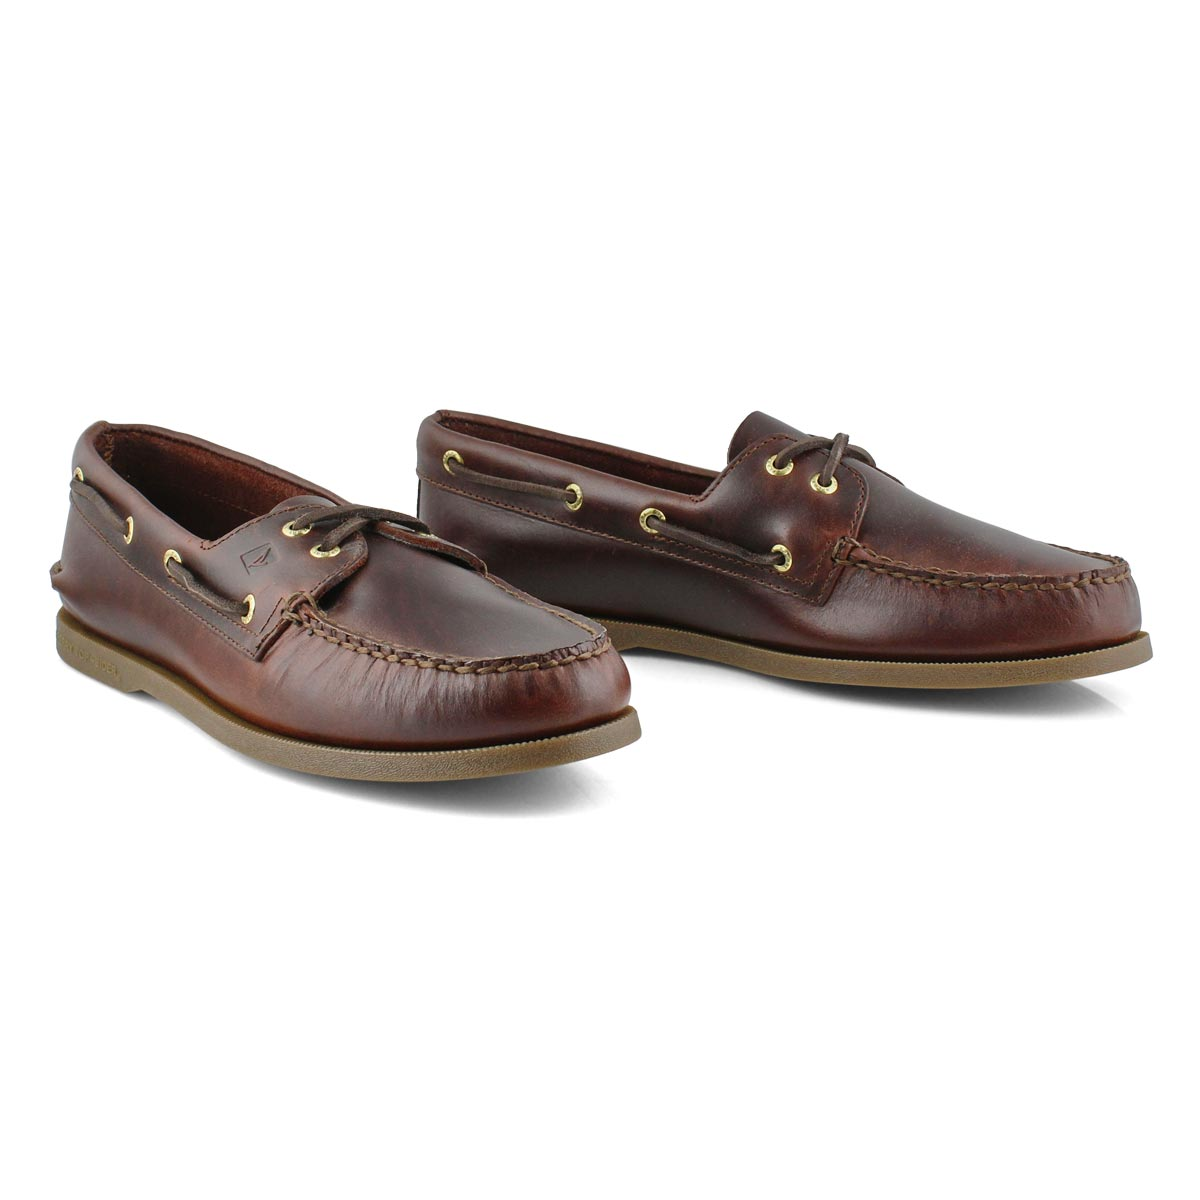 Mns A/O 2-eye amaretto boat shoe